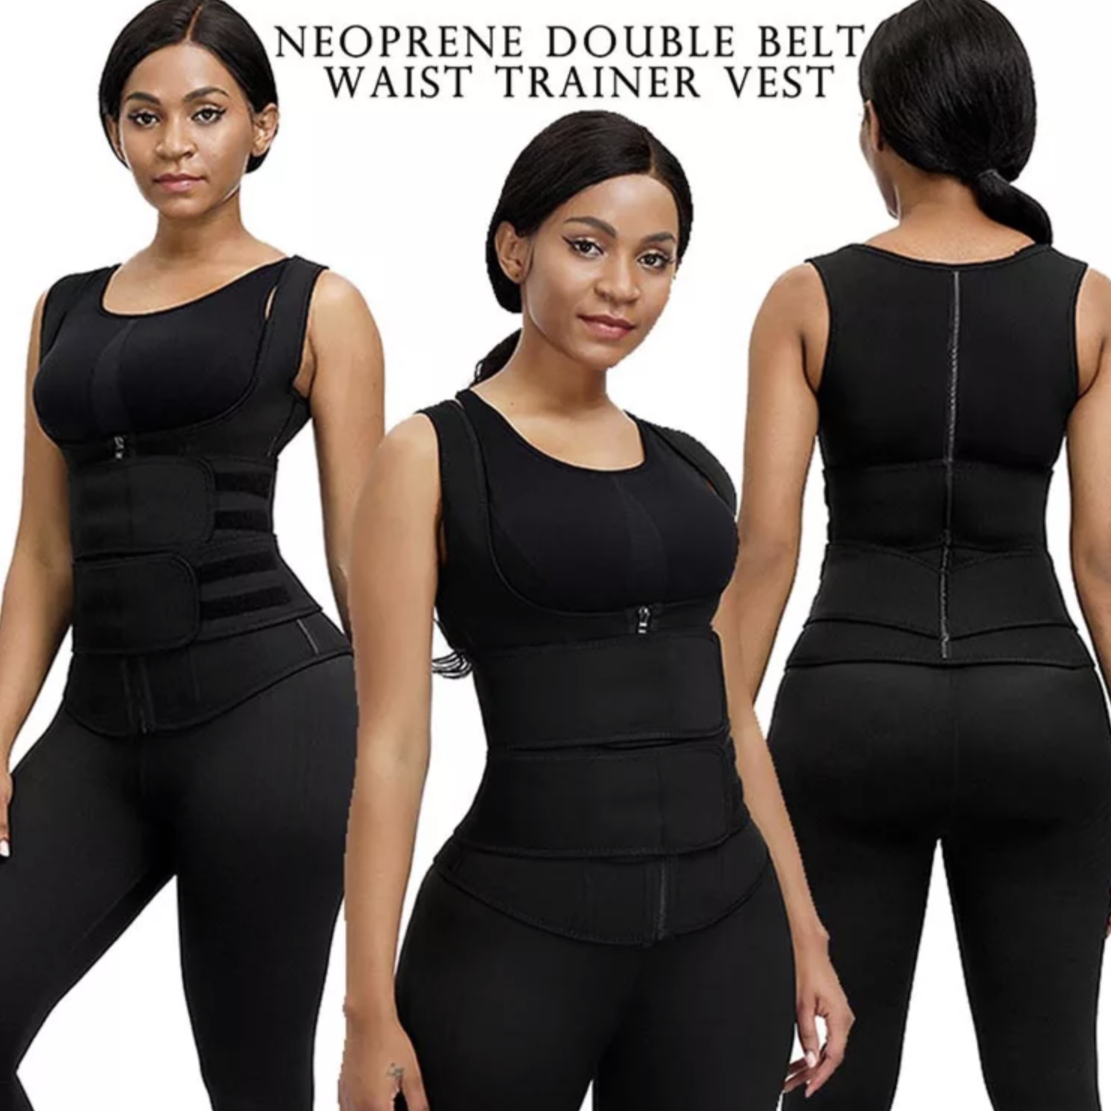 waist trainer double compression vest slimming black snatched